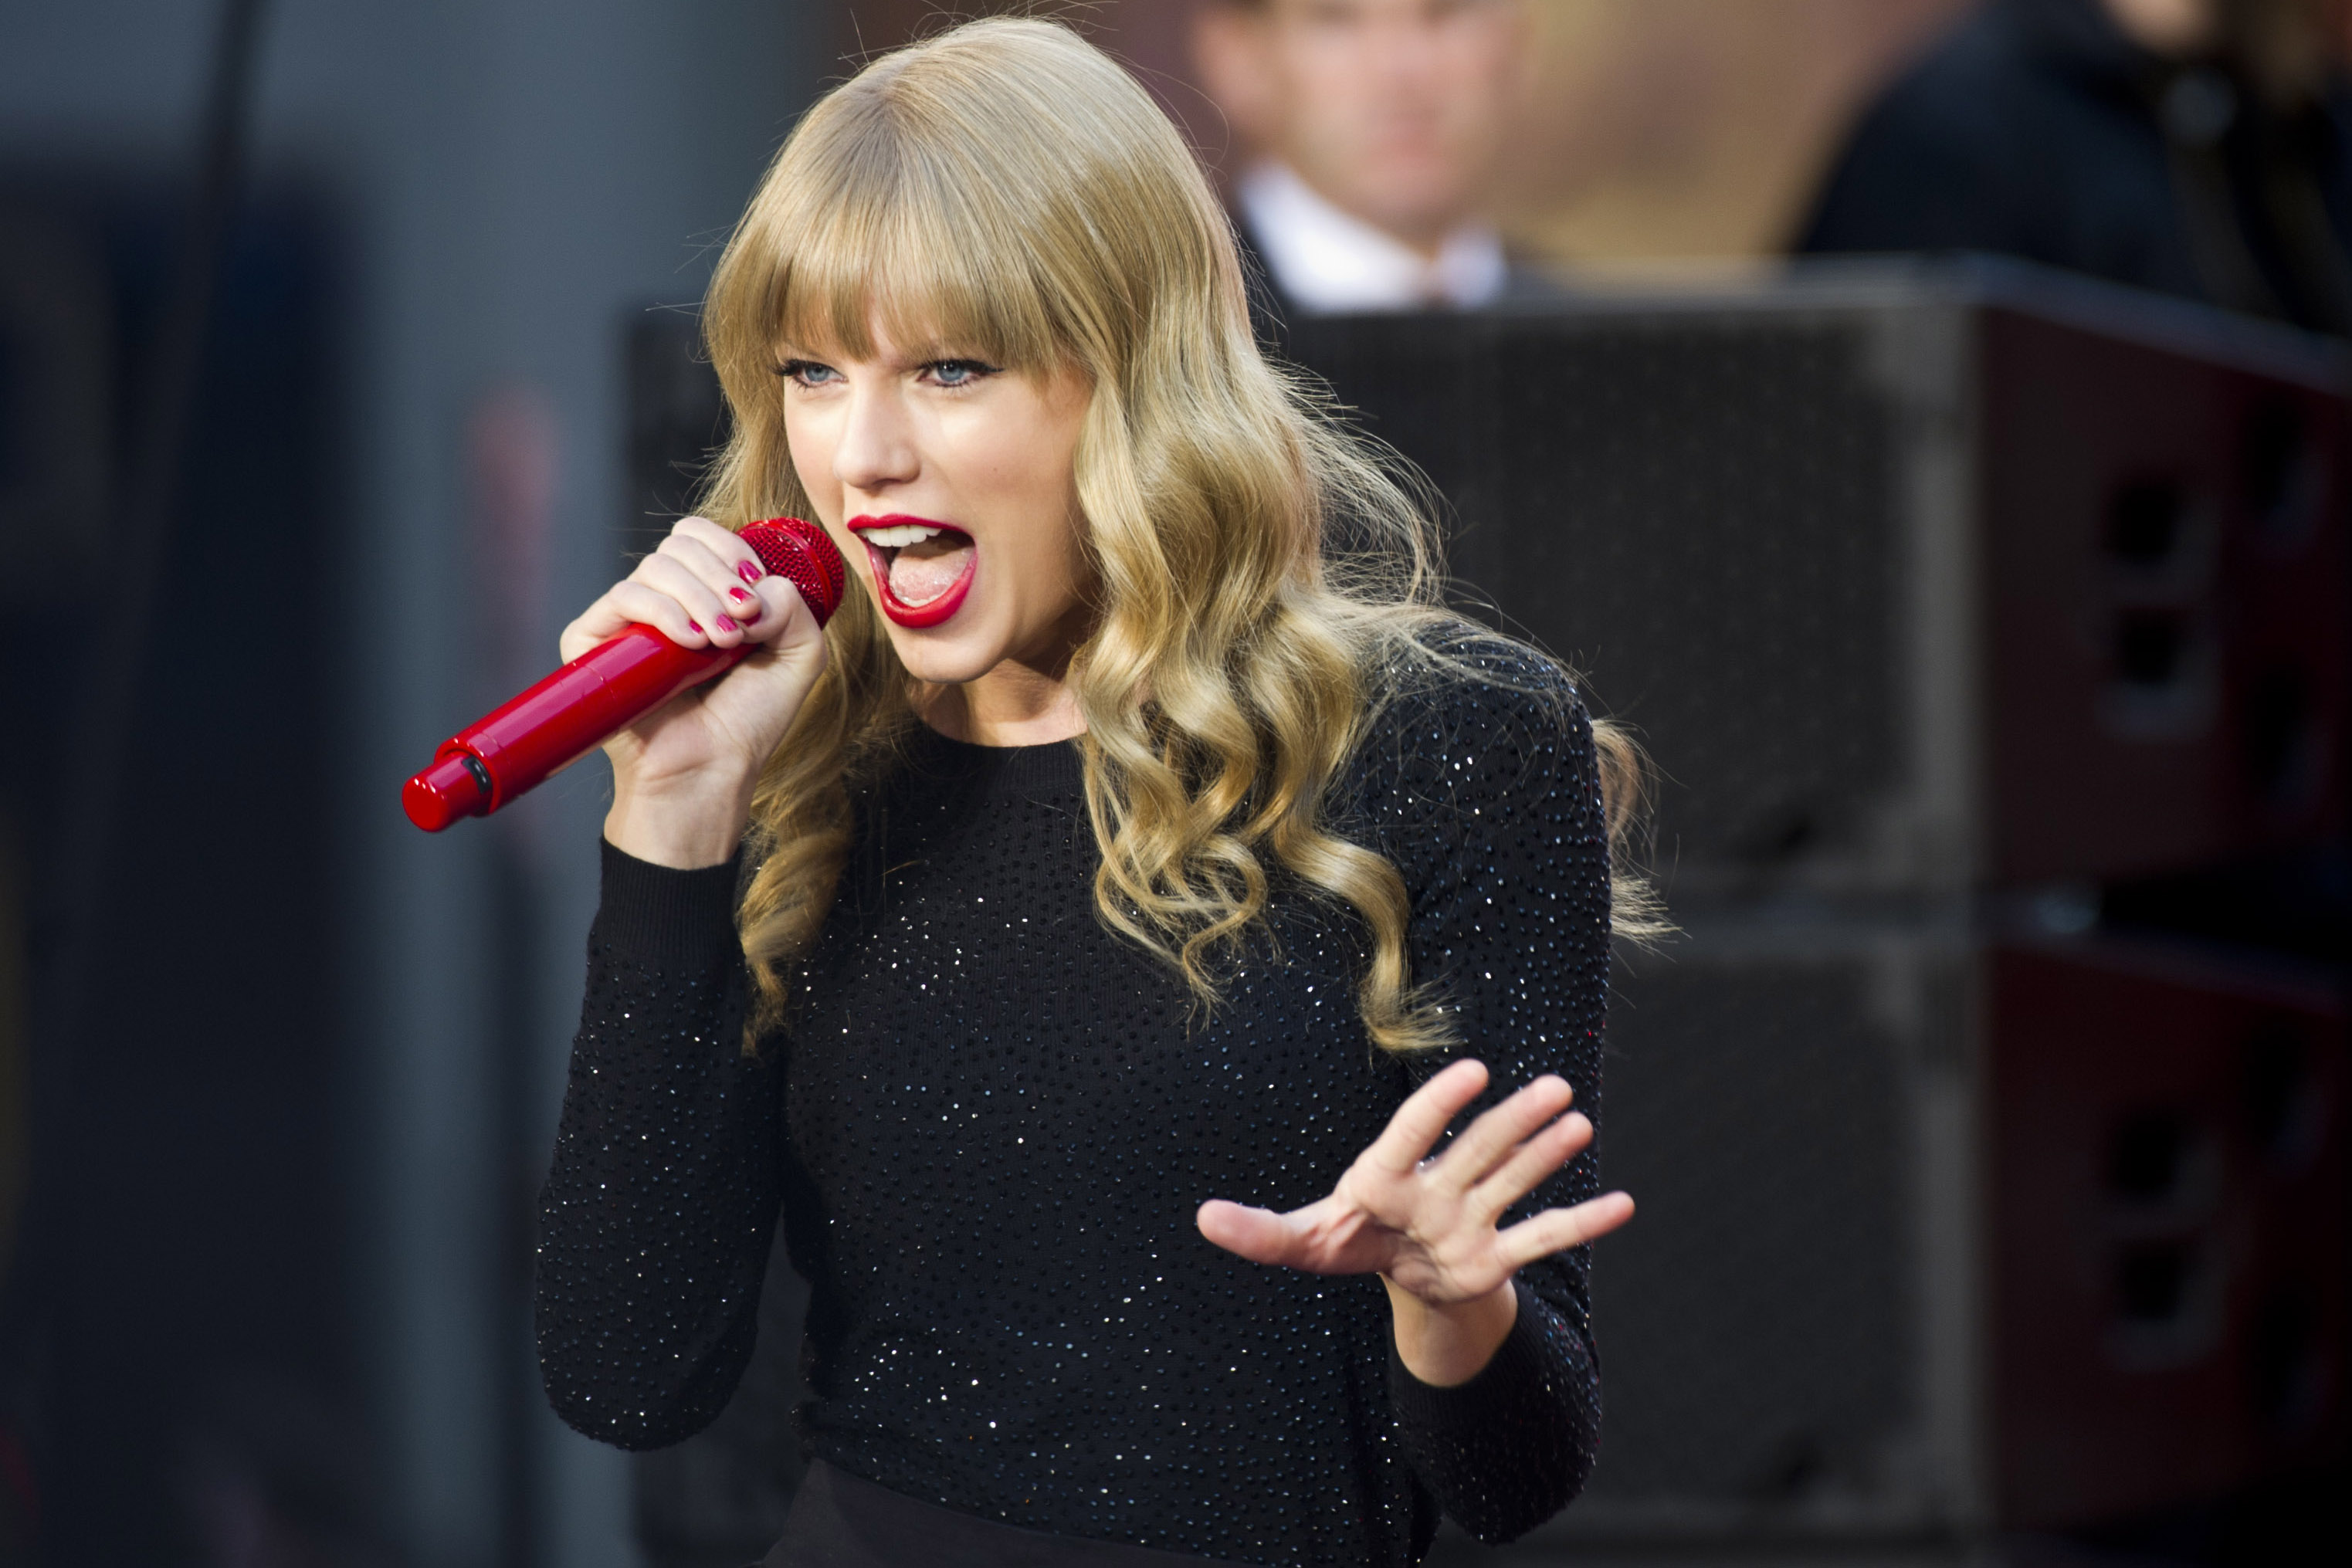 FILE - This Tues., Oct. 23, 2012 file photo shows Taylor Swift performing on ABC's